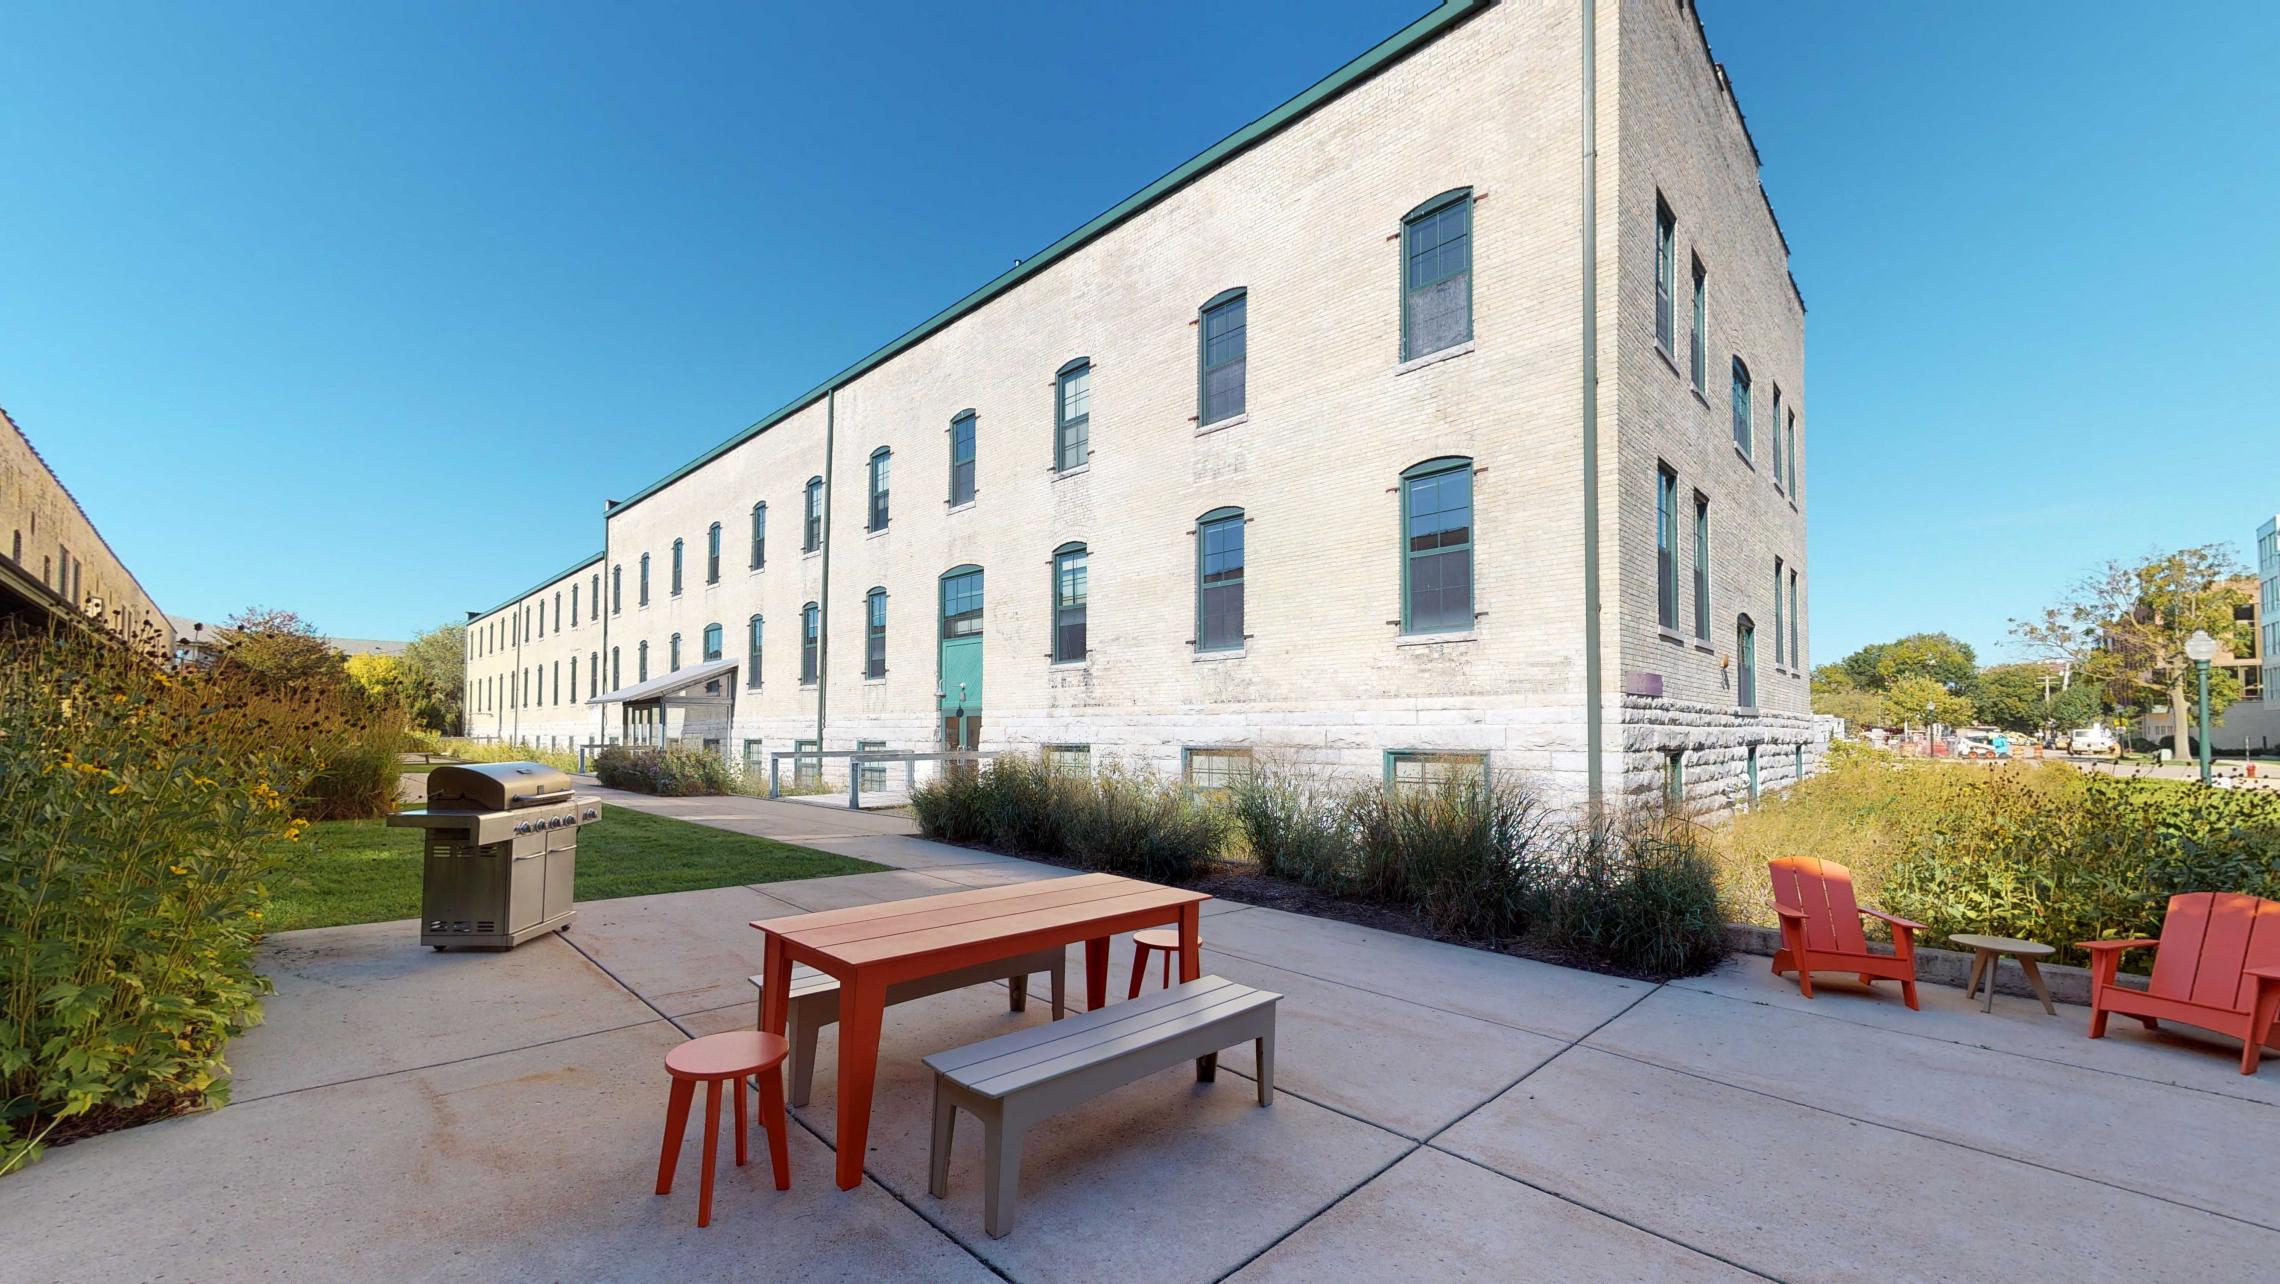 Tobacco-Lofts-Courtyard-Historic-Apartments-Design-Brick-Downtown-Madison-Yards-Boccie-Grill-Bike-Picnic-Dining